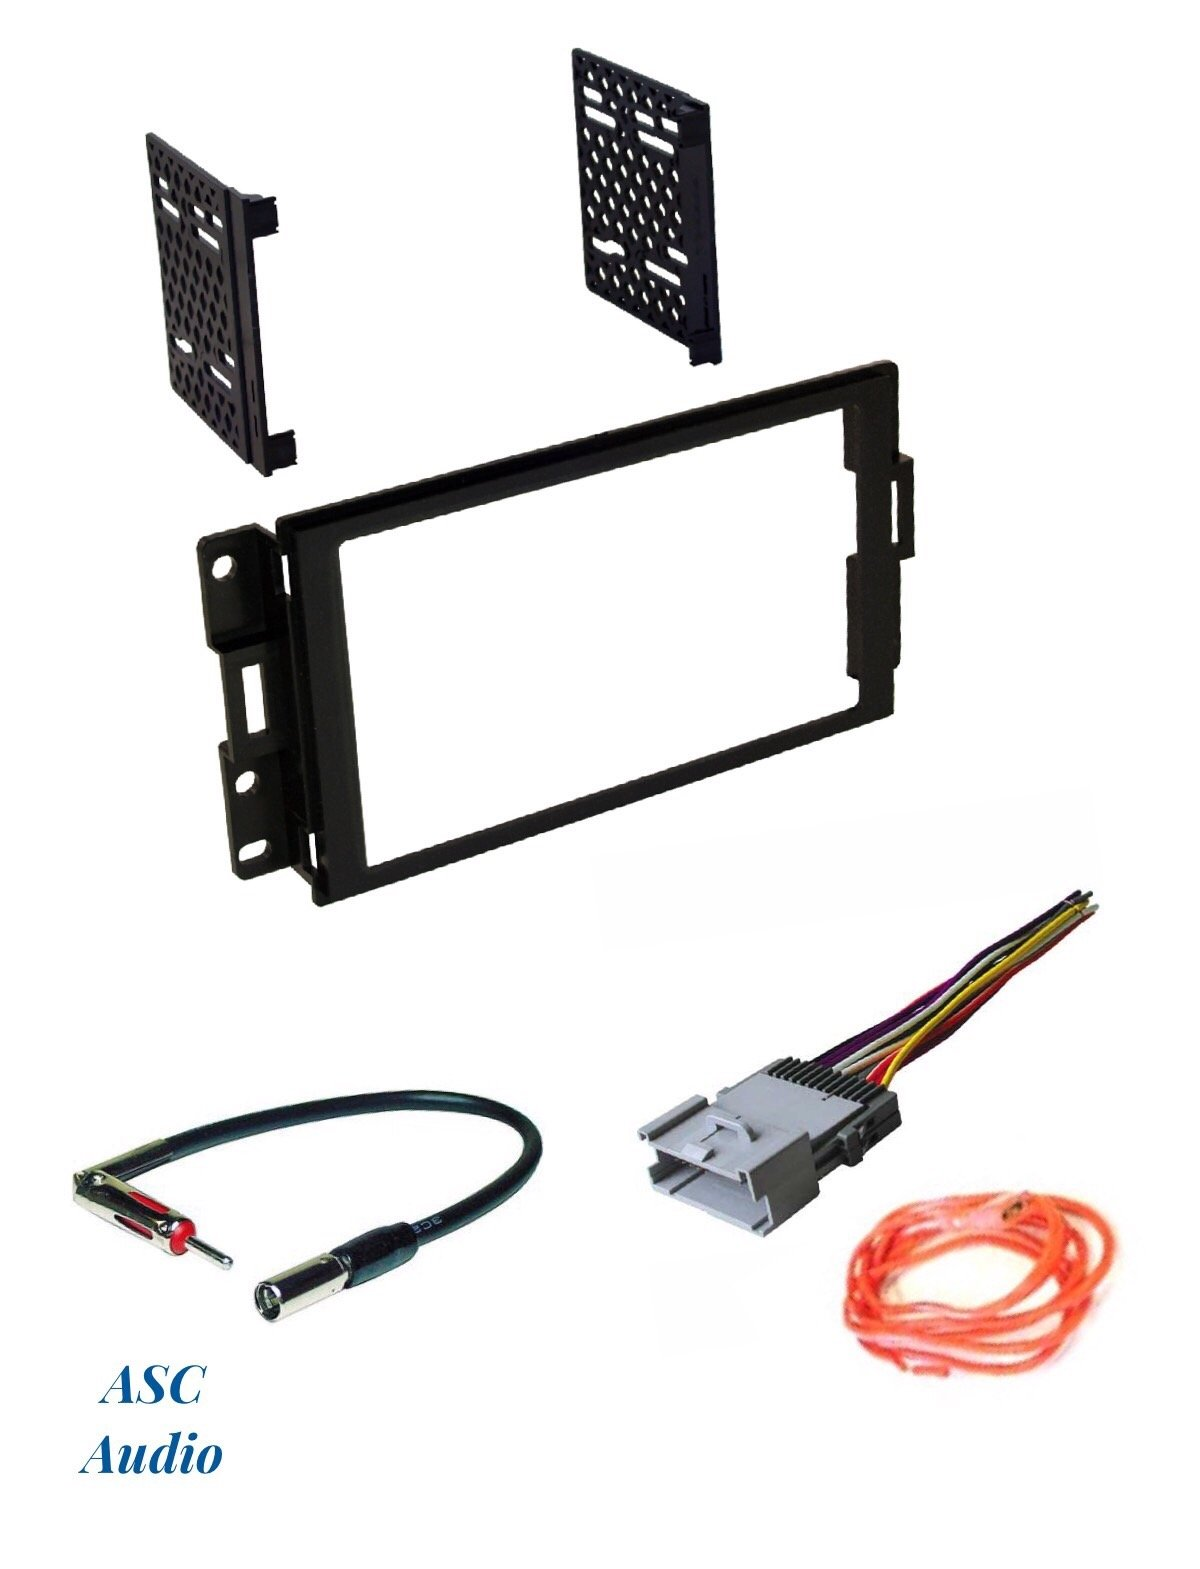 hight resolution of asc audio car stereo radio dash install kit wire harness and antenna adapter to install a double din radio for 2004 2005 2006 2007 2008 pontiac grand prix